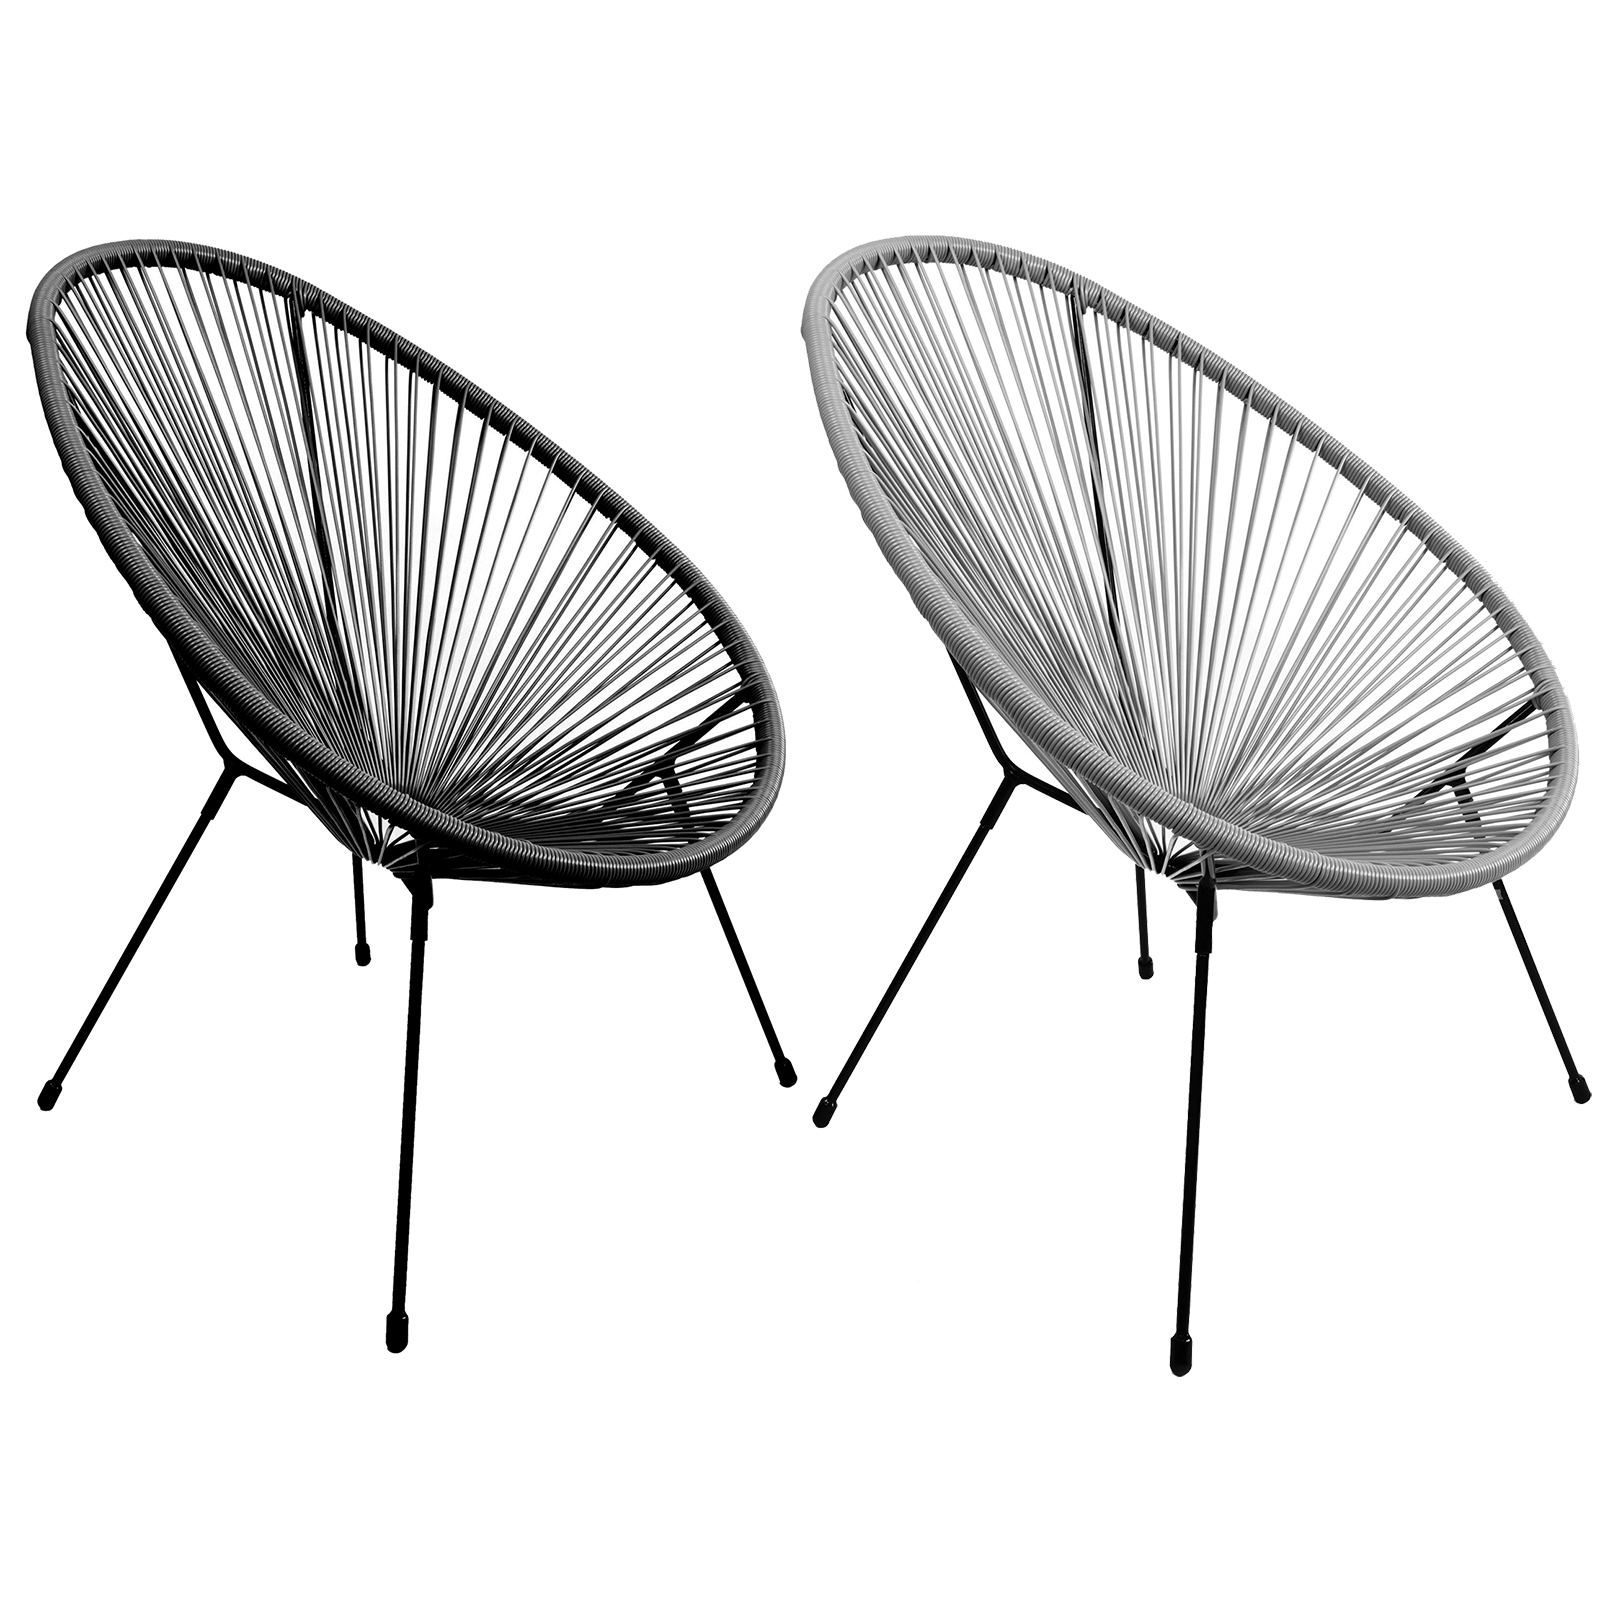 Egg Wicker Chairs Outdoor Details About Rattan String Chairs Moon Egg Modern Stylish Funky Furniture Indoor Outdoor New